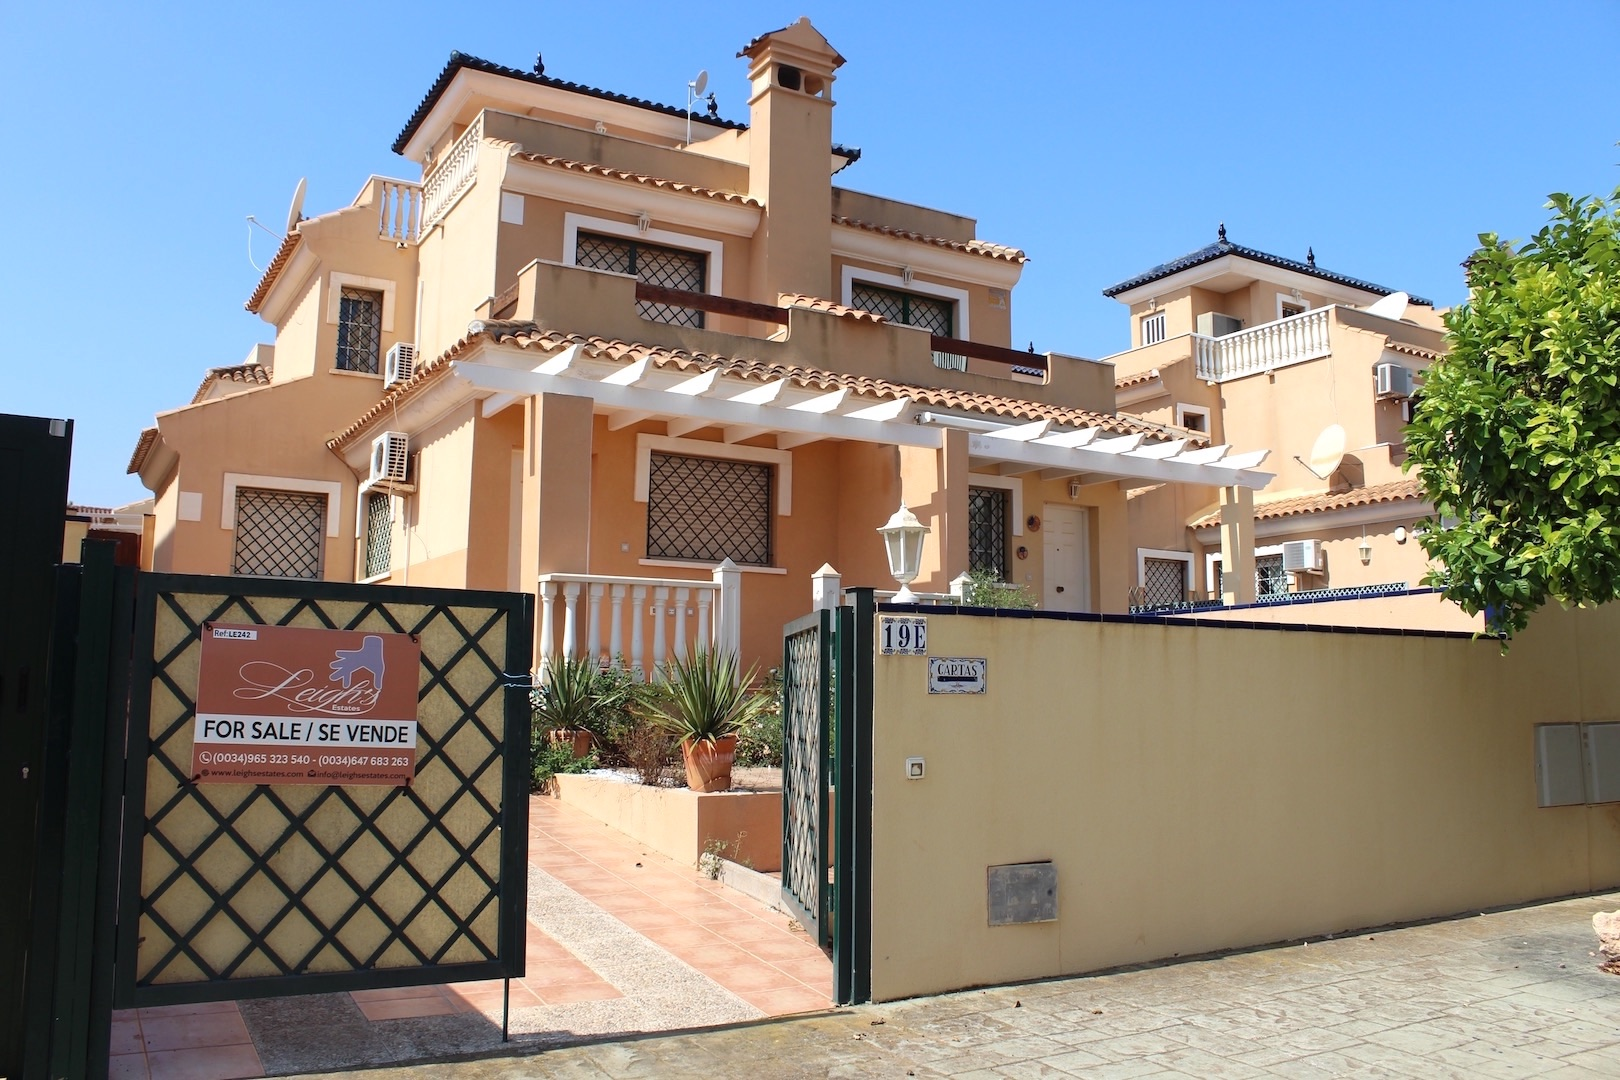 Town House in Mil Palmeras, for sale